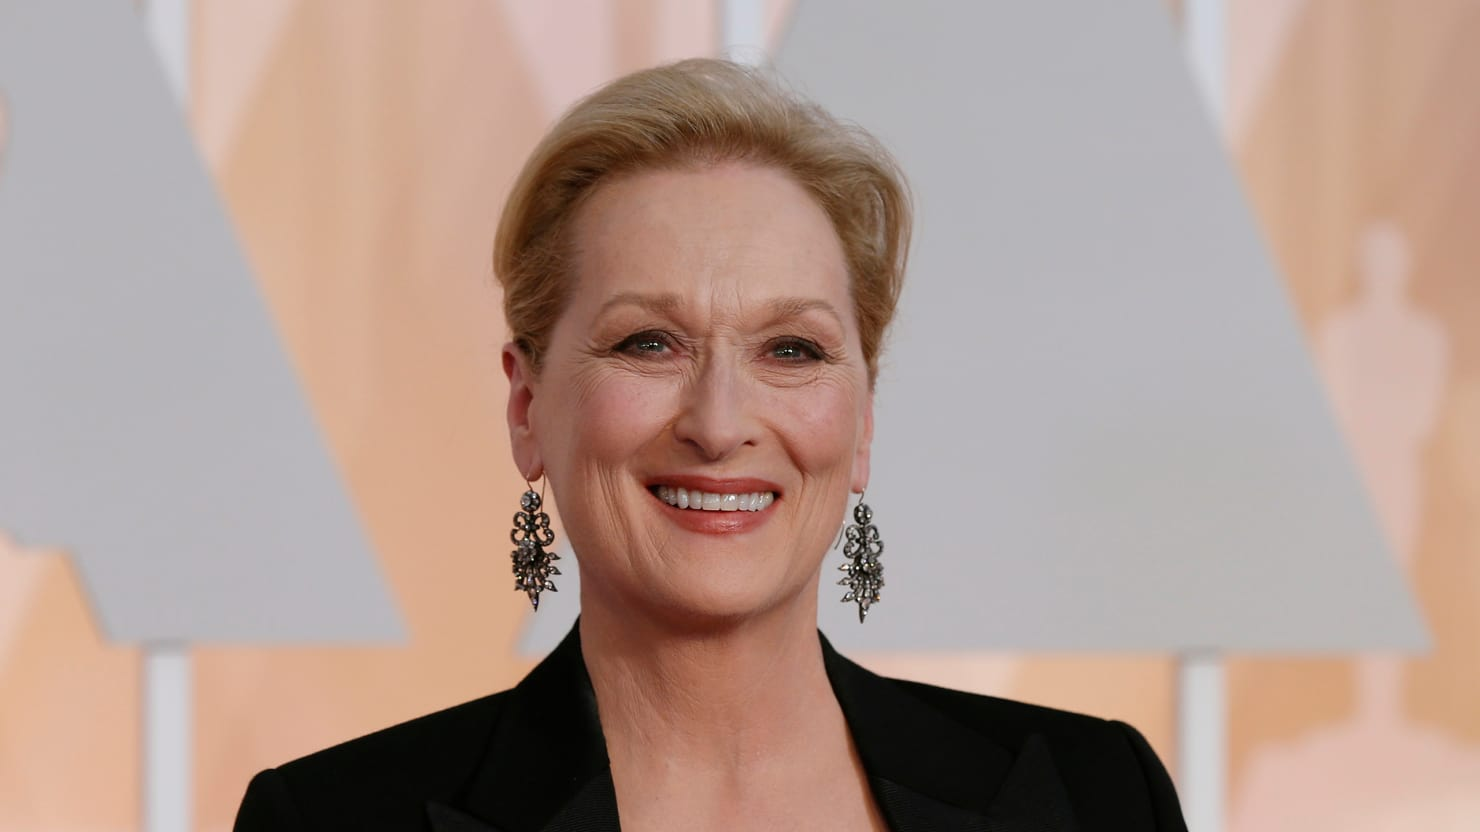 Meryl Streep: la reina eterna de Hollywood